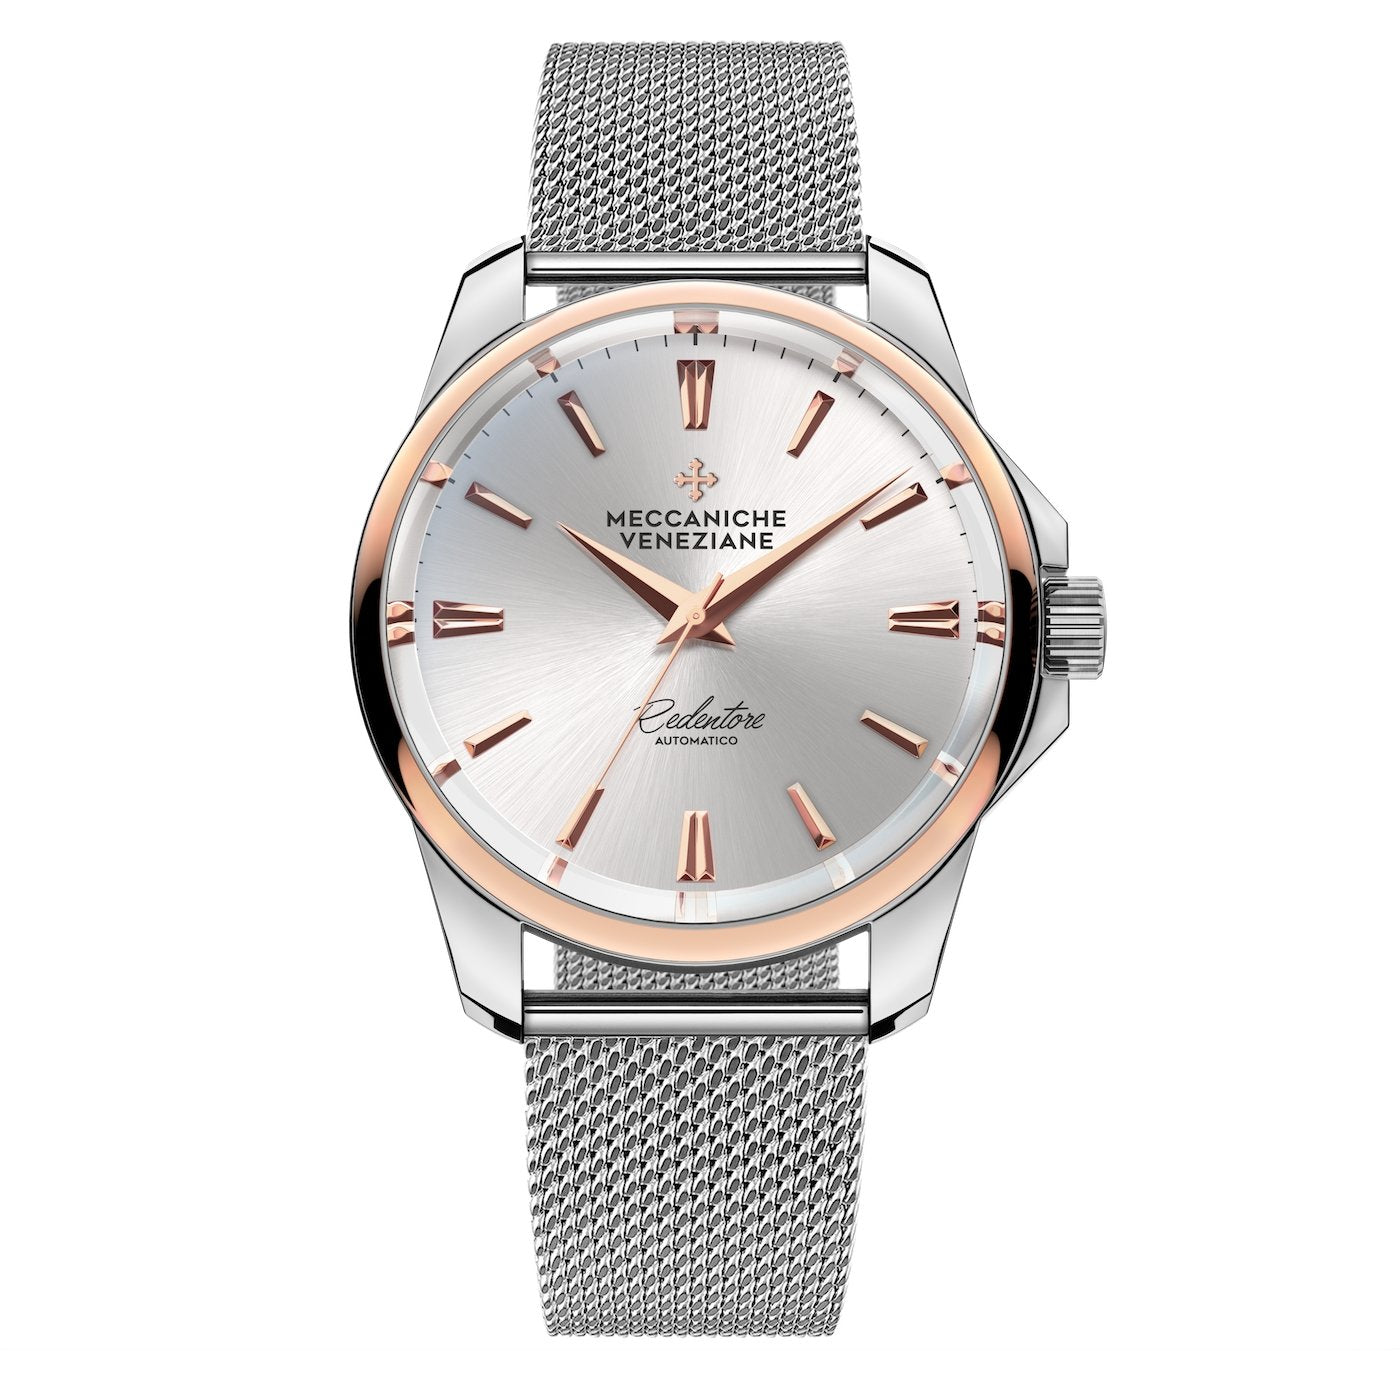 Meccaniche Veneziane Redentore 36 Milanese IP Rose Gold - Watches & Crystals